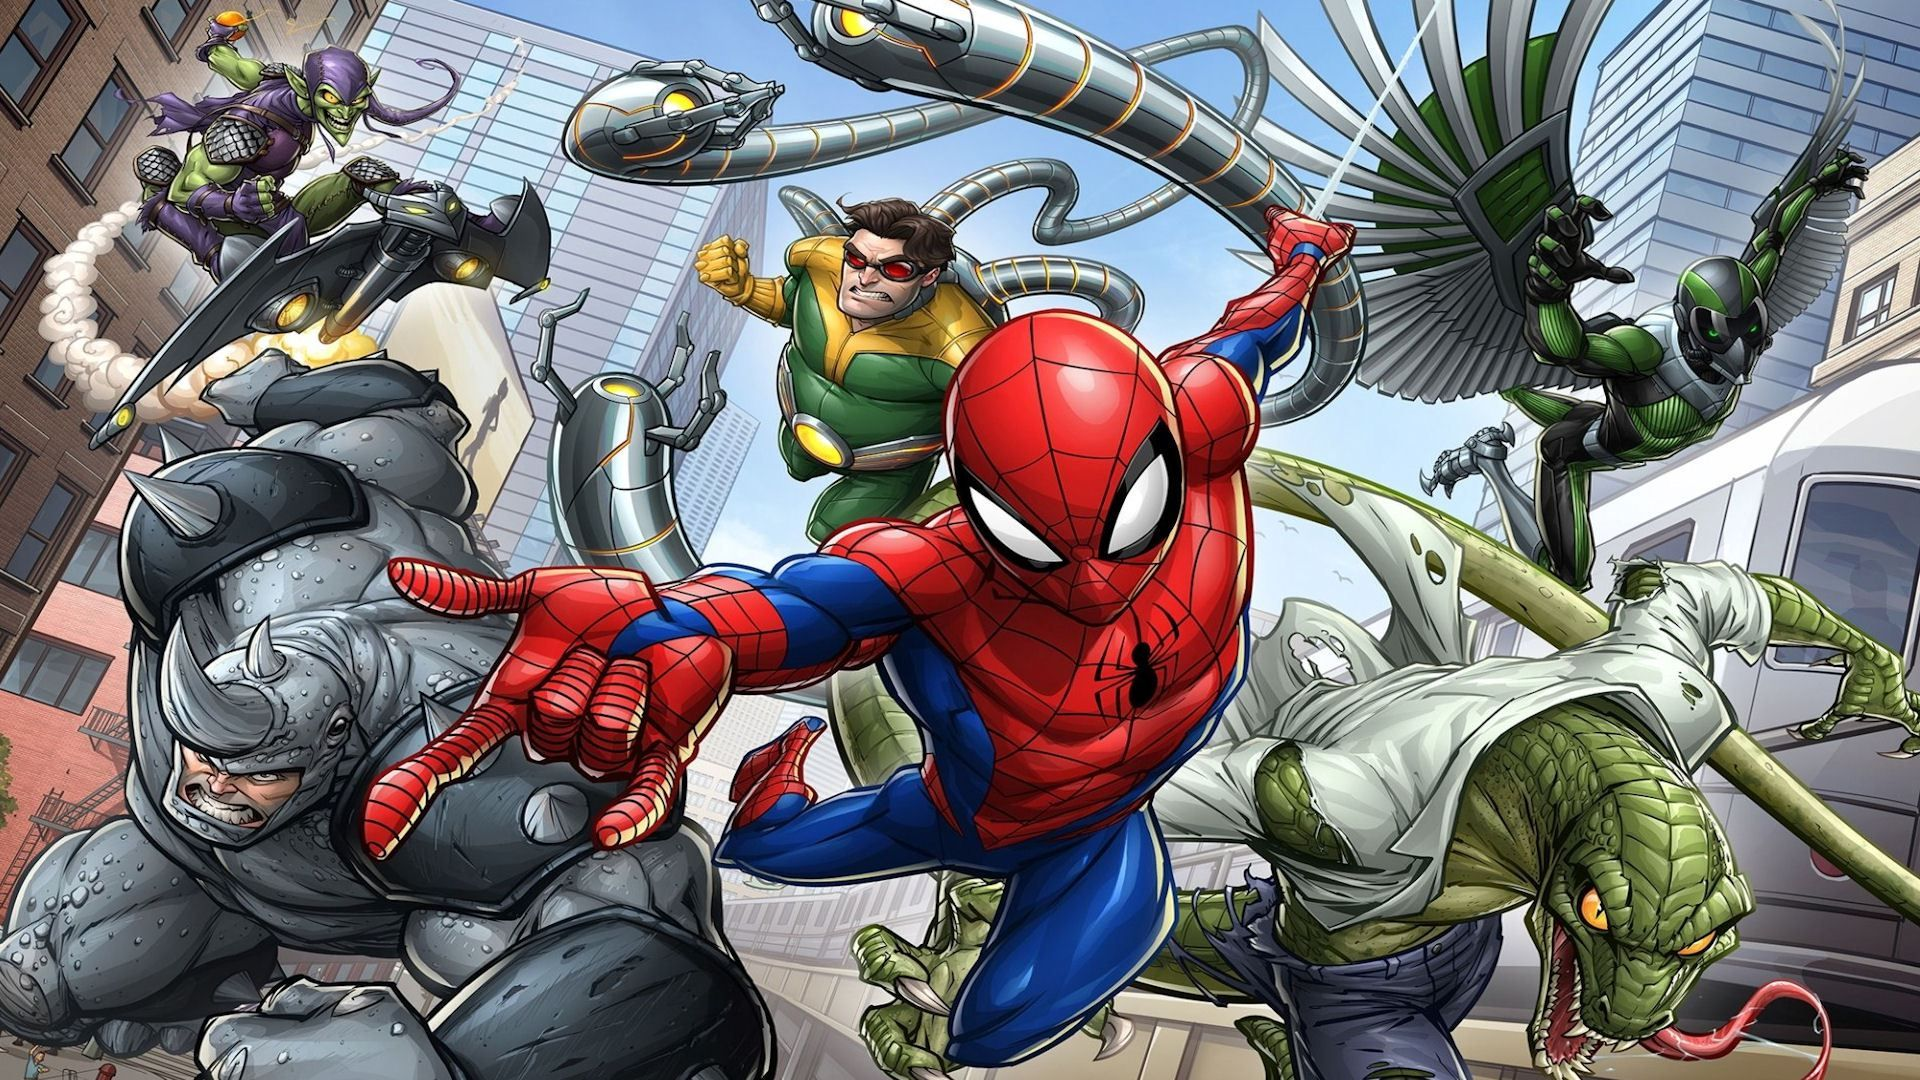 Cool marvel wallpapers hd 2 epic heroes select 45 x